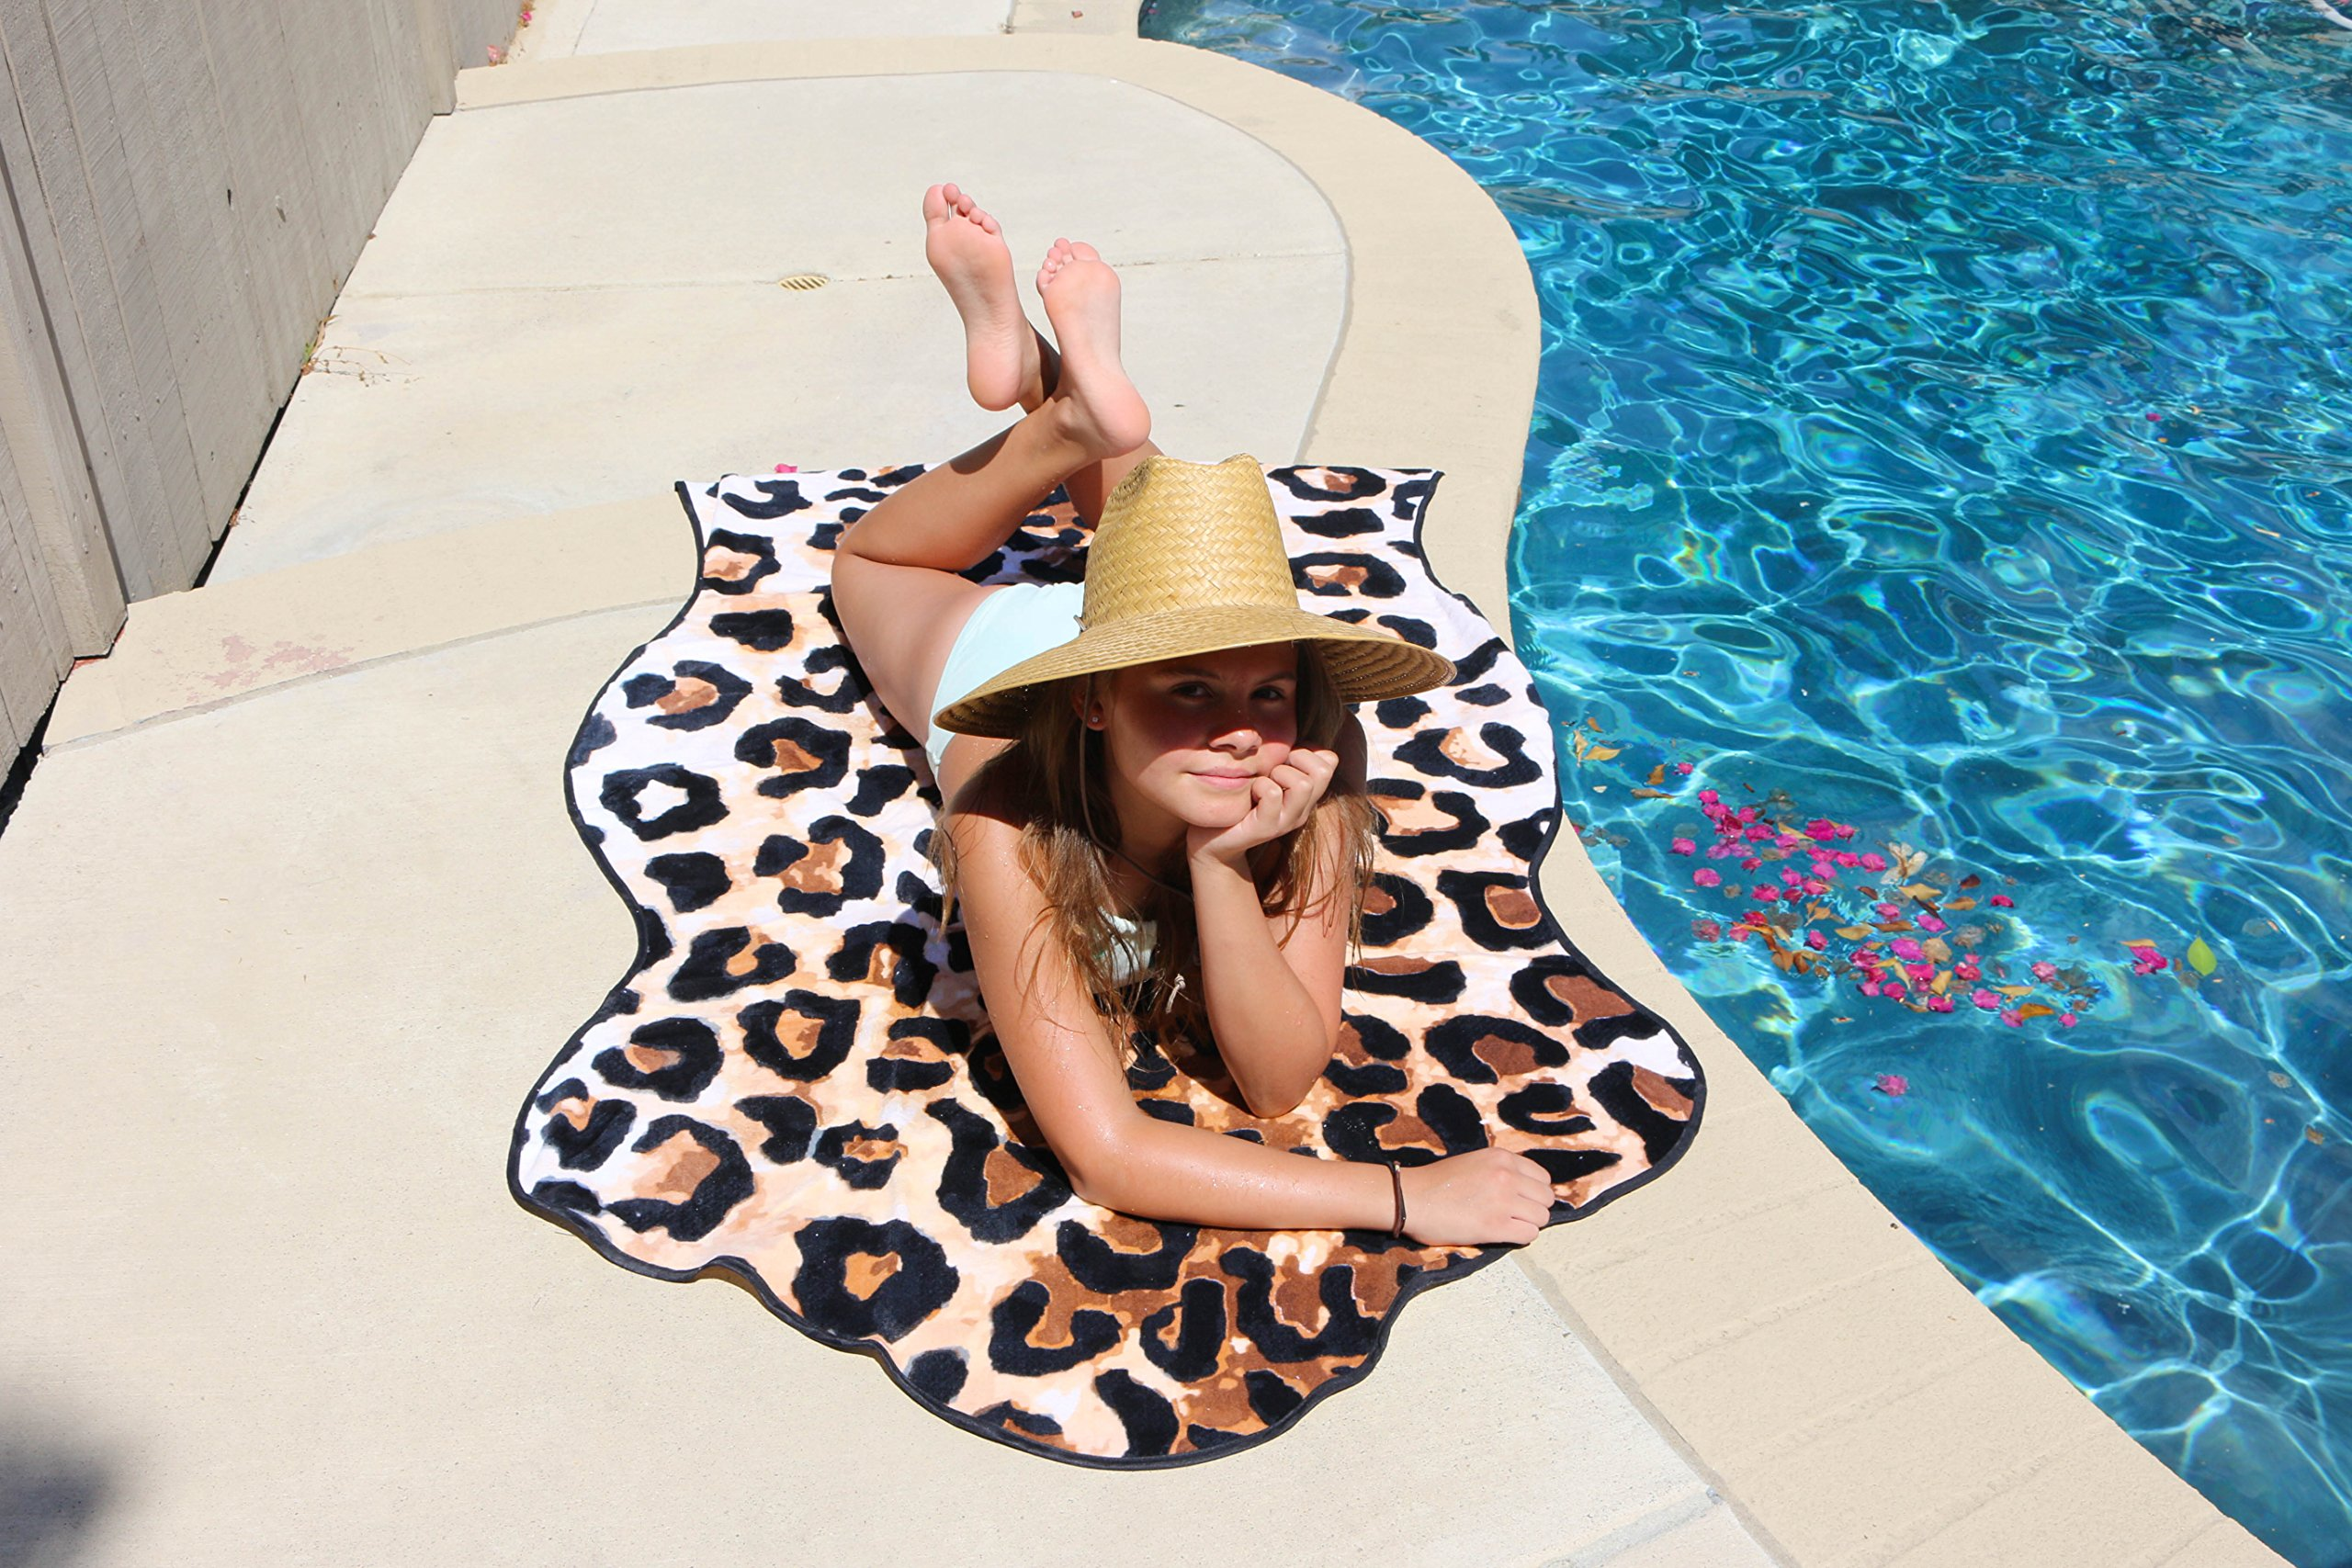 Round Towel Oversized Leopard Print Animal Shaped Beach Towels by Co. Thick Soft & Absorbent 100% Cotton 53″ x 70″ - 4+ styles (Leopard)